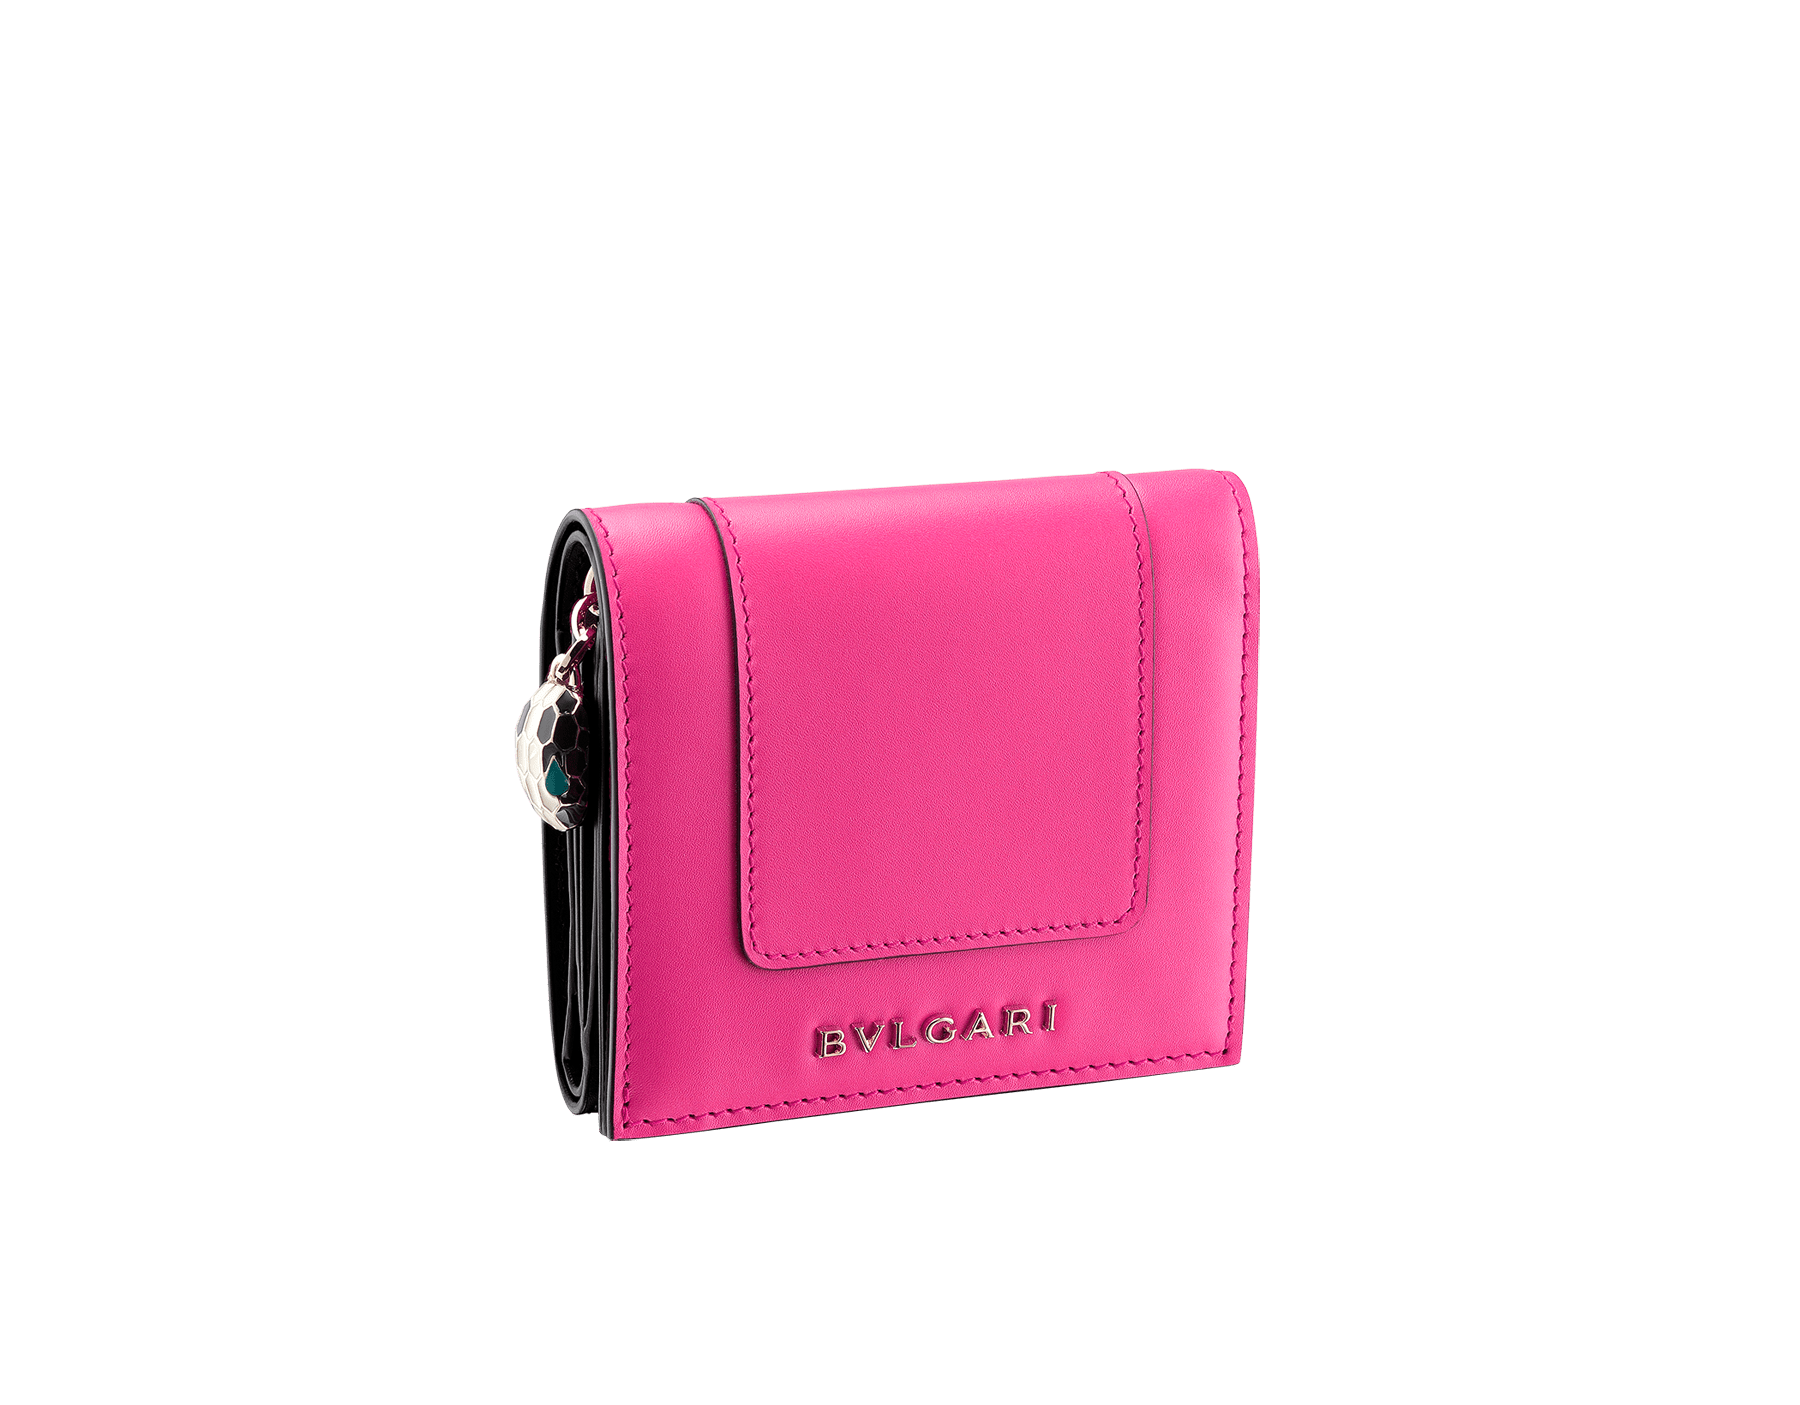 Serpenti Forever super compact wallet flash amethyst and black calf leather. Iconic snakehead zip puller in black and white enamel, with green malachite eyes. 288858 image 1